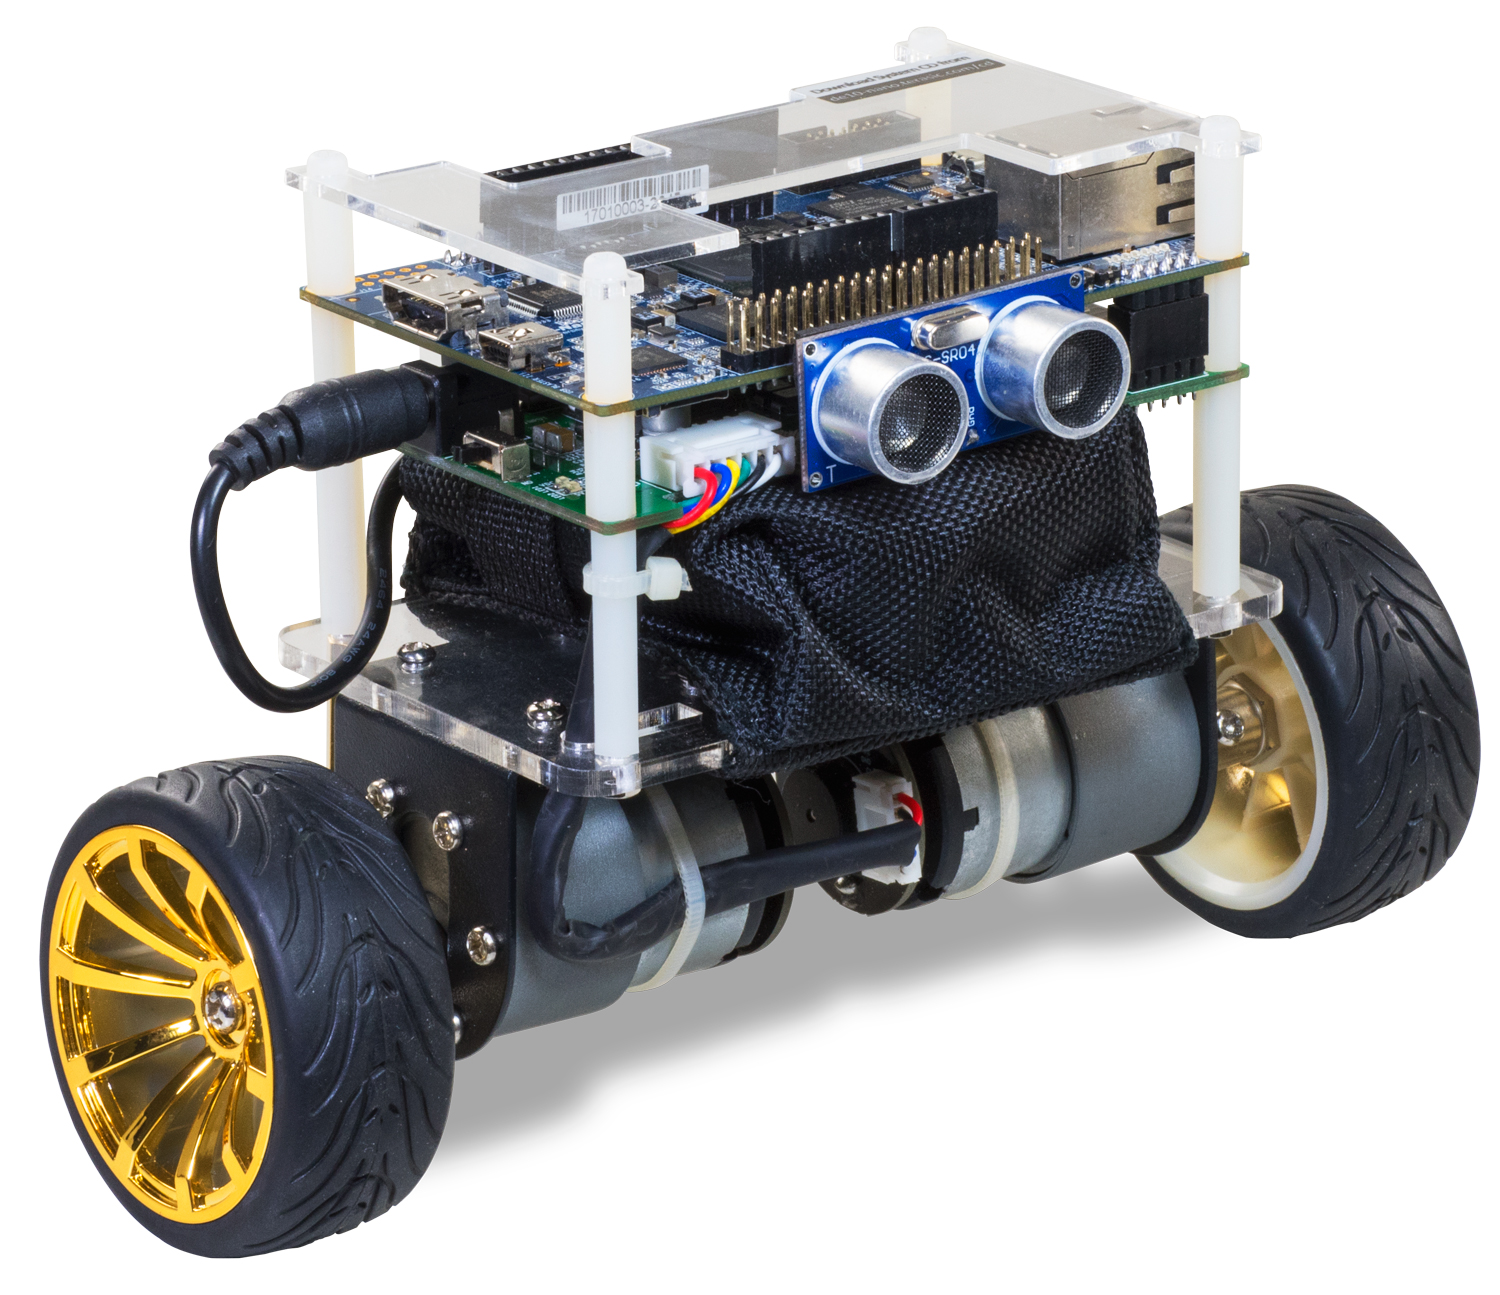 Terasic - Robotic Kits - Self-Balancing Robot